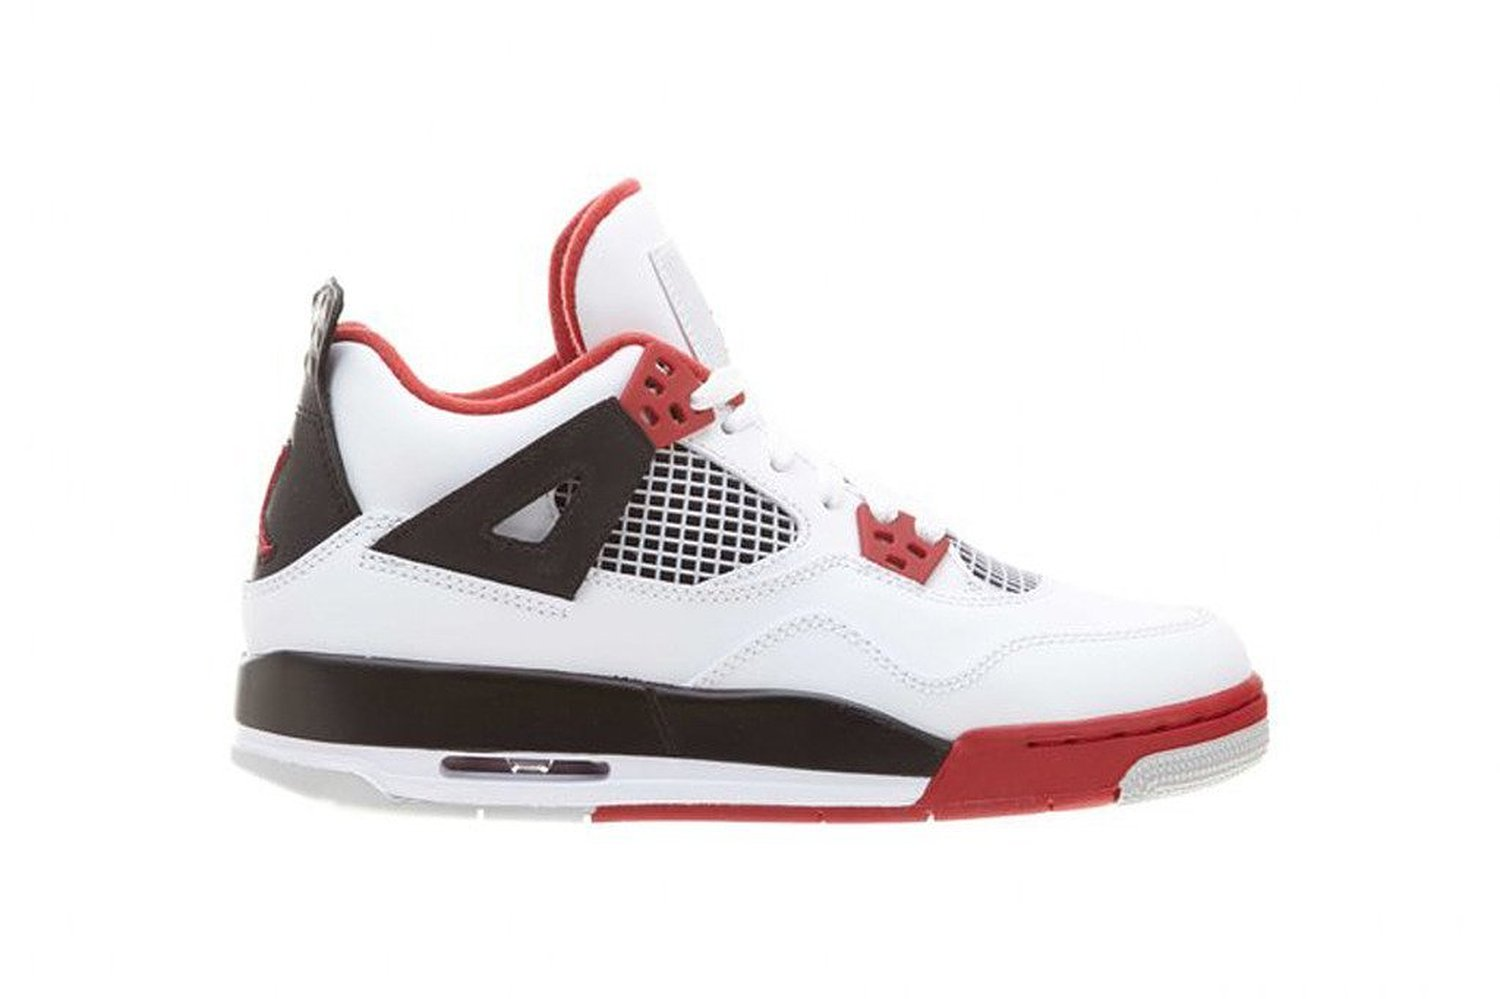 """Air 4 Retro JORDA ® Retro """"Cement"""" shoes Basketball Leather Sneakers Shoes Athletic For Men"""